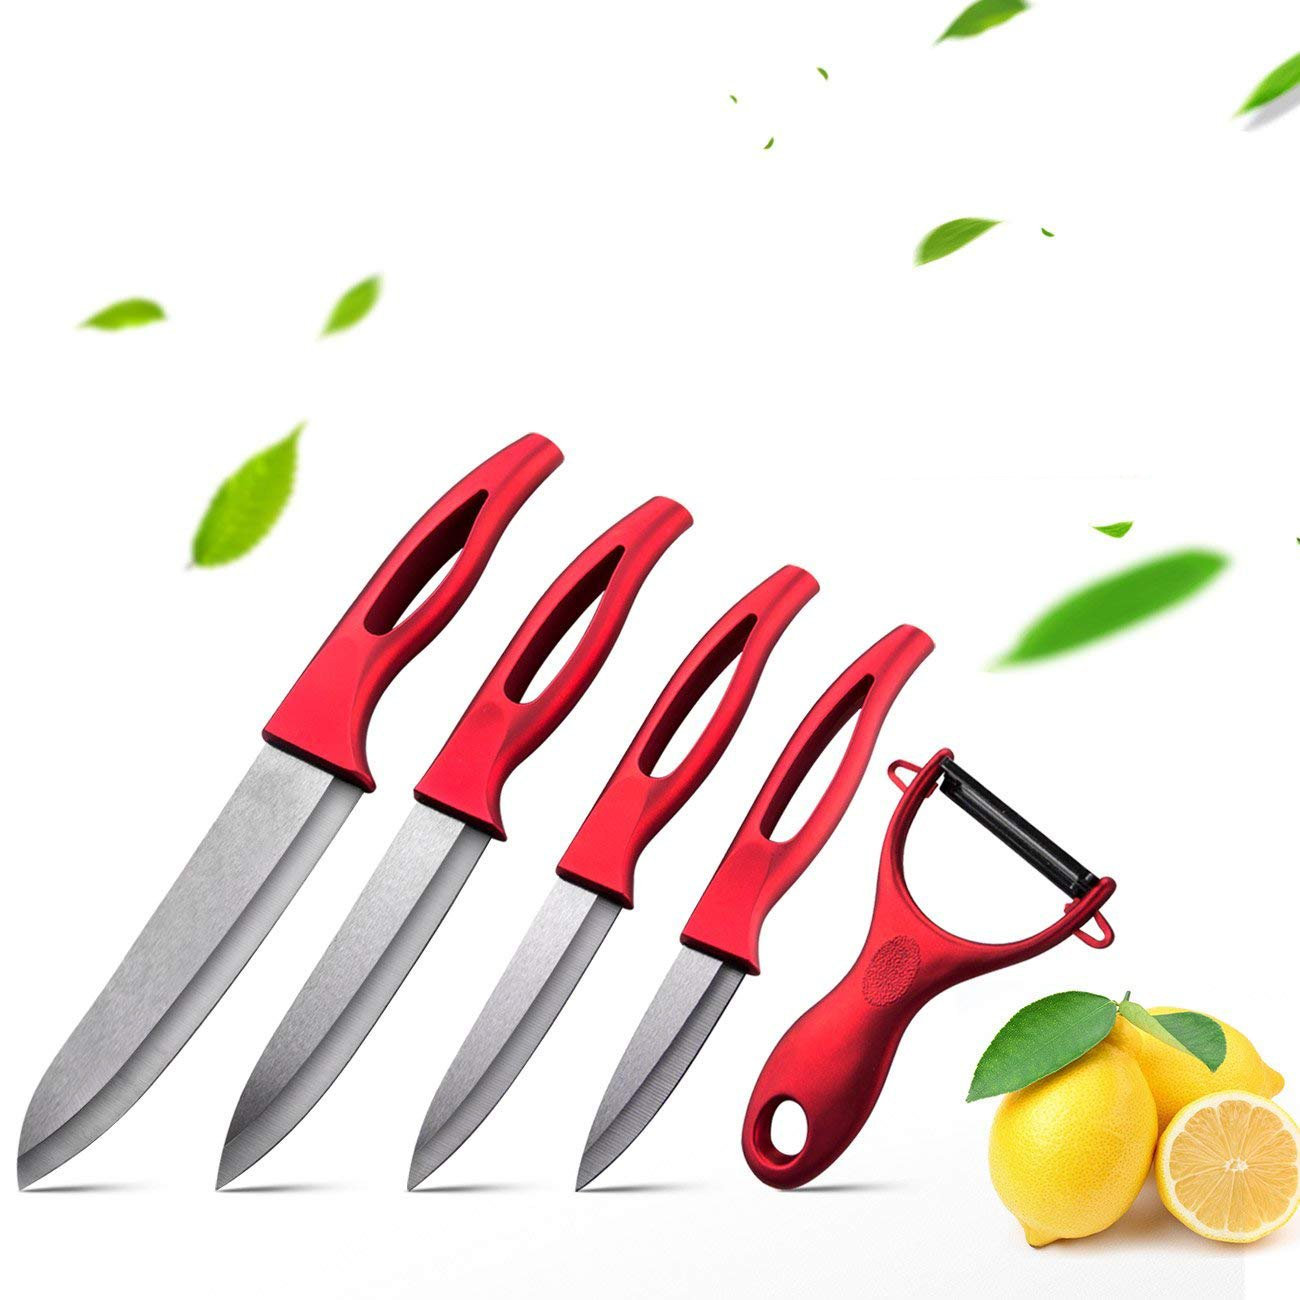 Ceramic Knife Set,5 Pieces Kitchen Cutlery Ceramic Knife Set Sharp Blade 3'' Peeling 4'' Paring 5''Utility 6'' Chef Knife and Ceramic Peeler with Red Handle